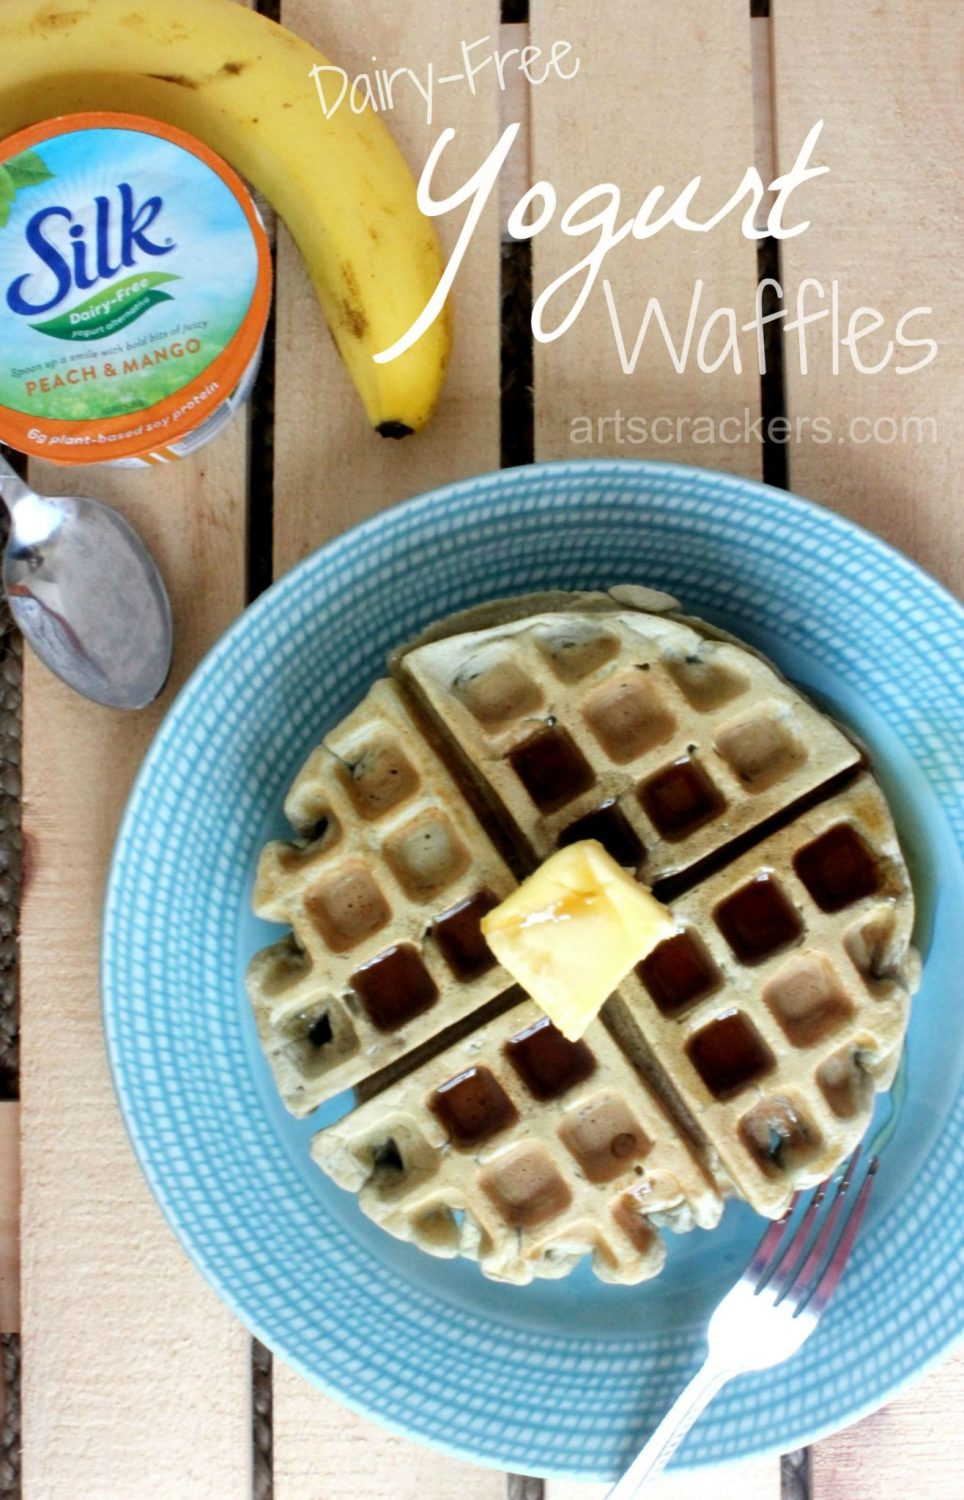 Dairy-Free Yogurt Waffles with Silk